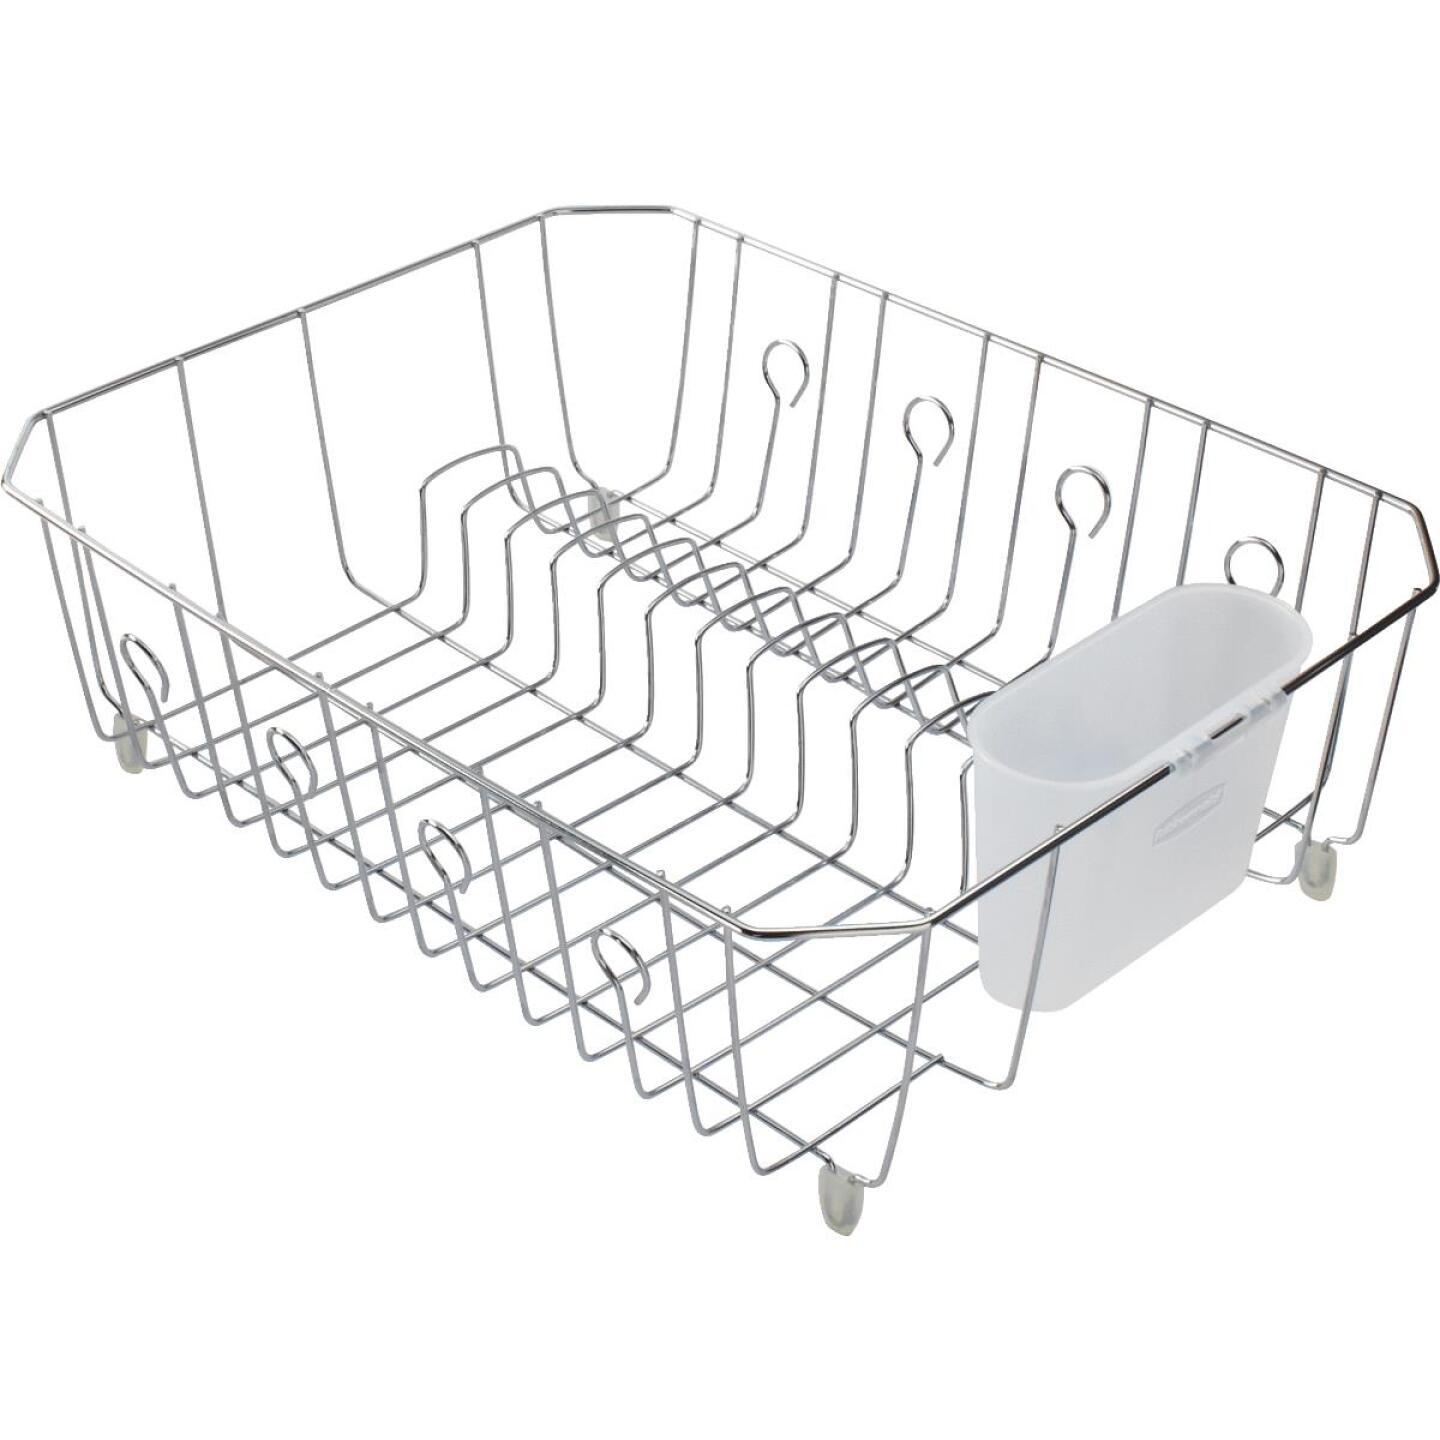 Rubbermaid 13.81 In. x 17.62 In. Chrome Wire Sink Dish Drainer Image 1